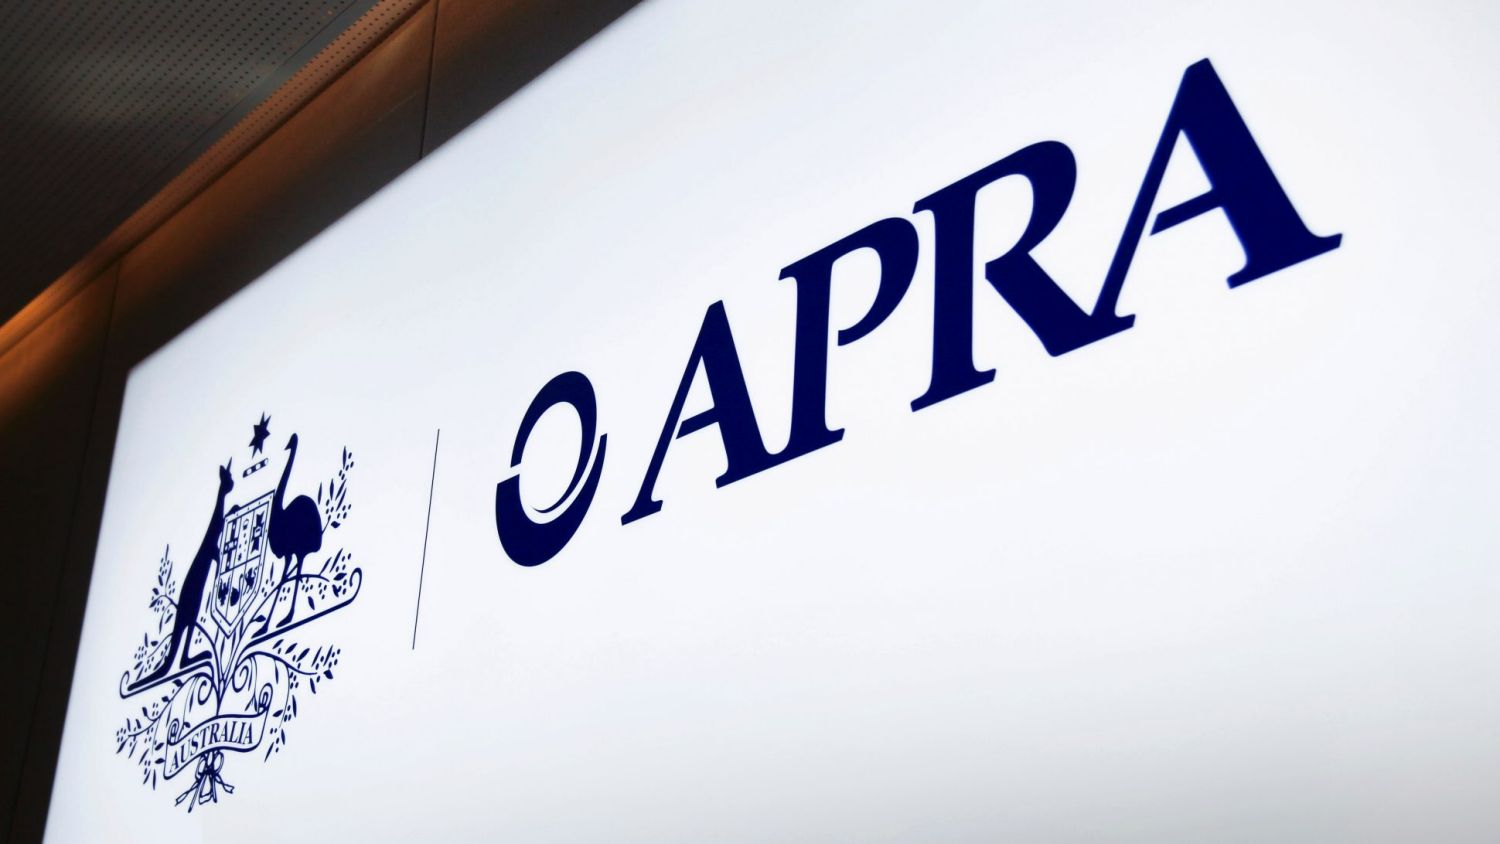 You can check the apra site to see if a potential bank is licensed.